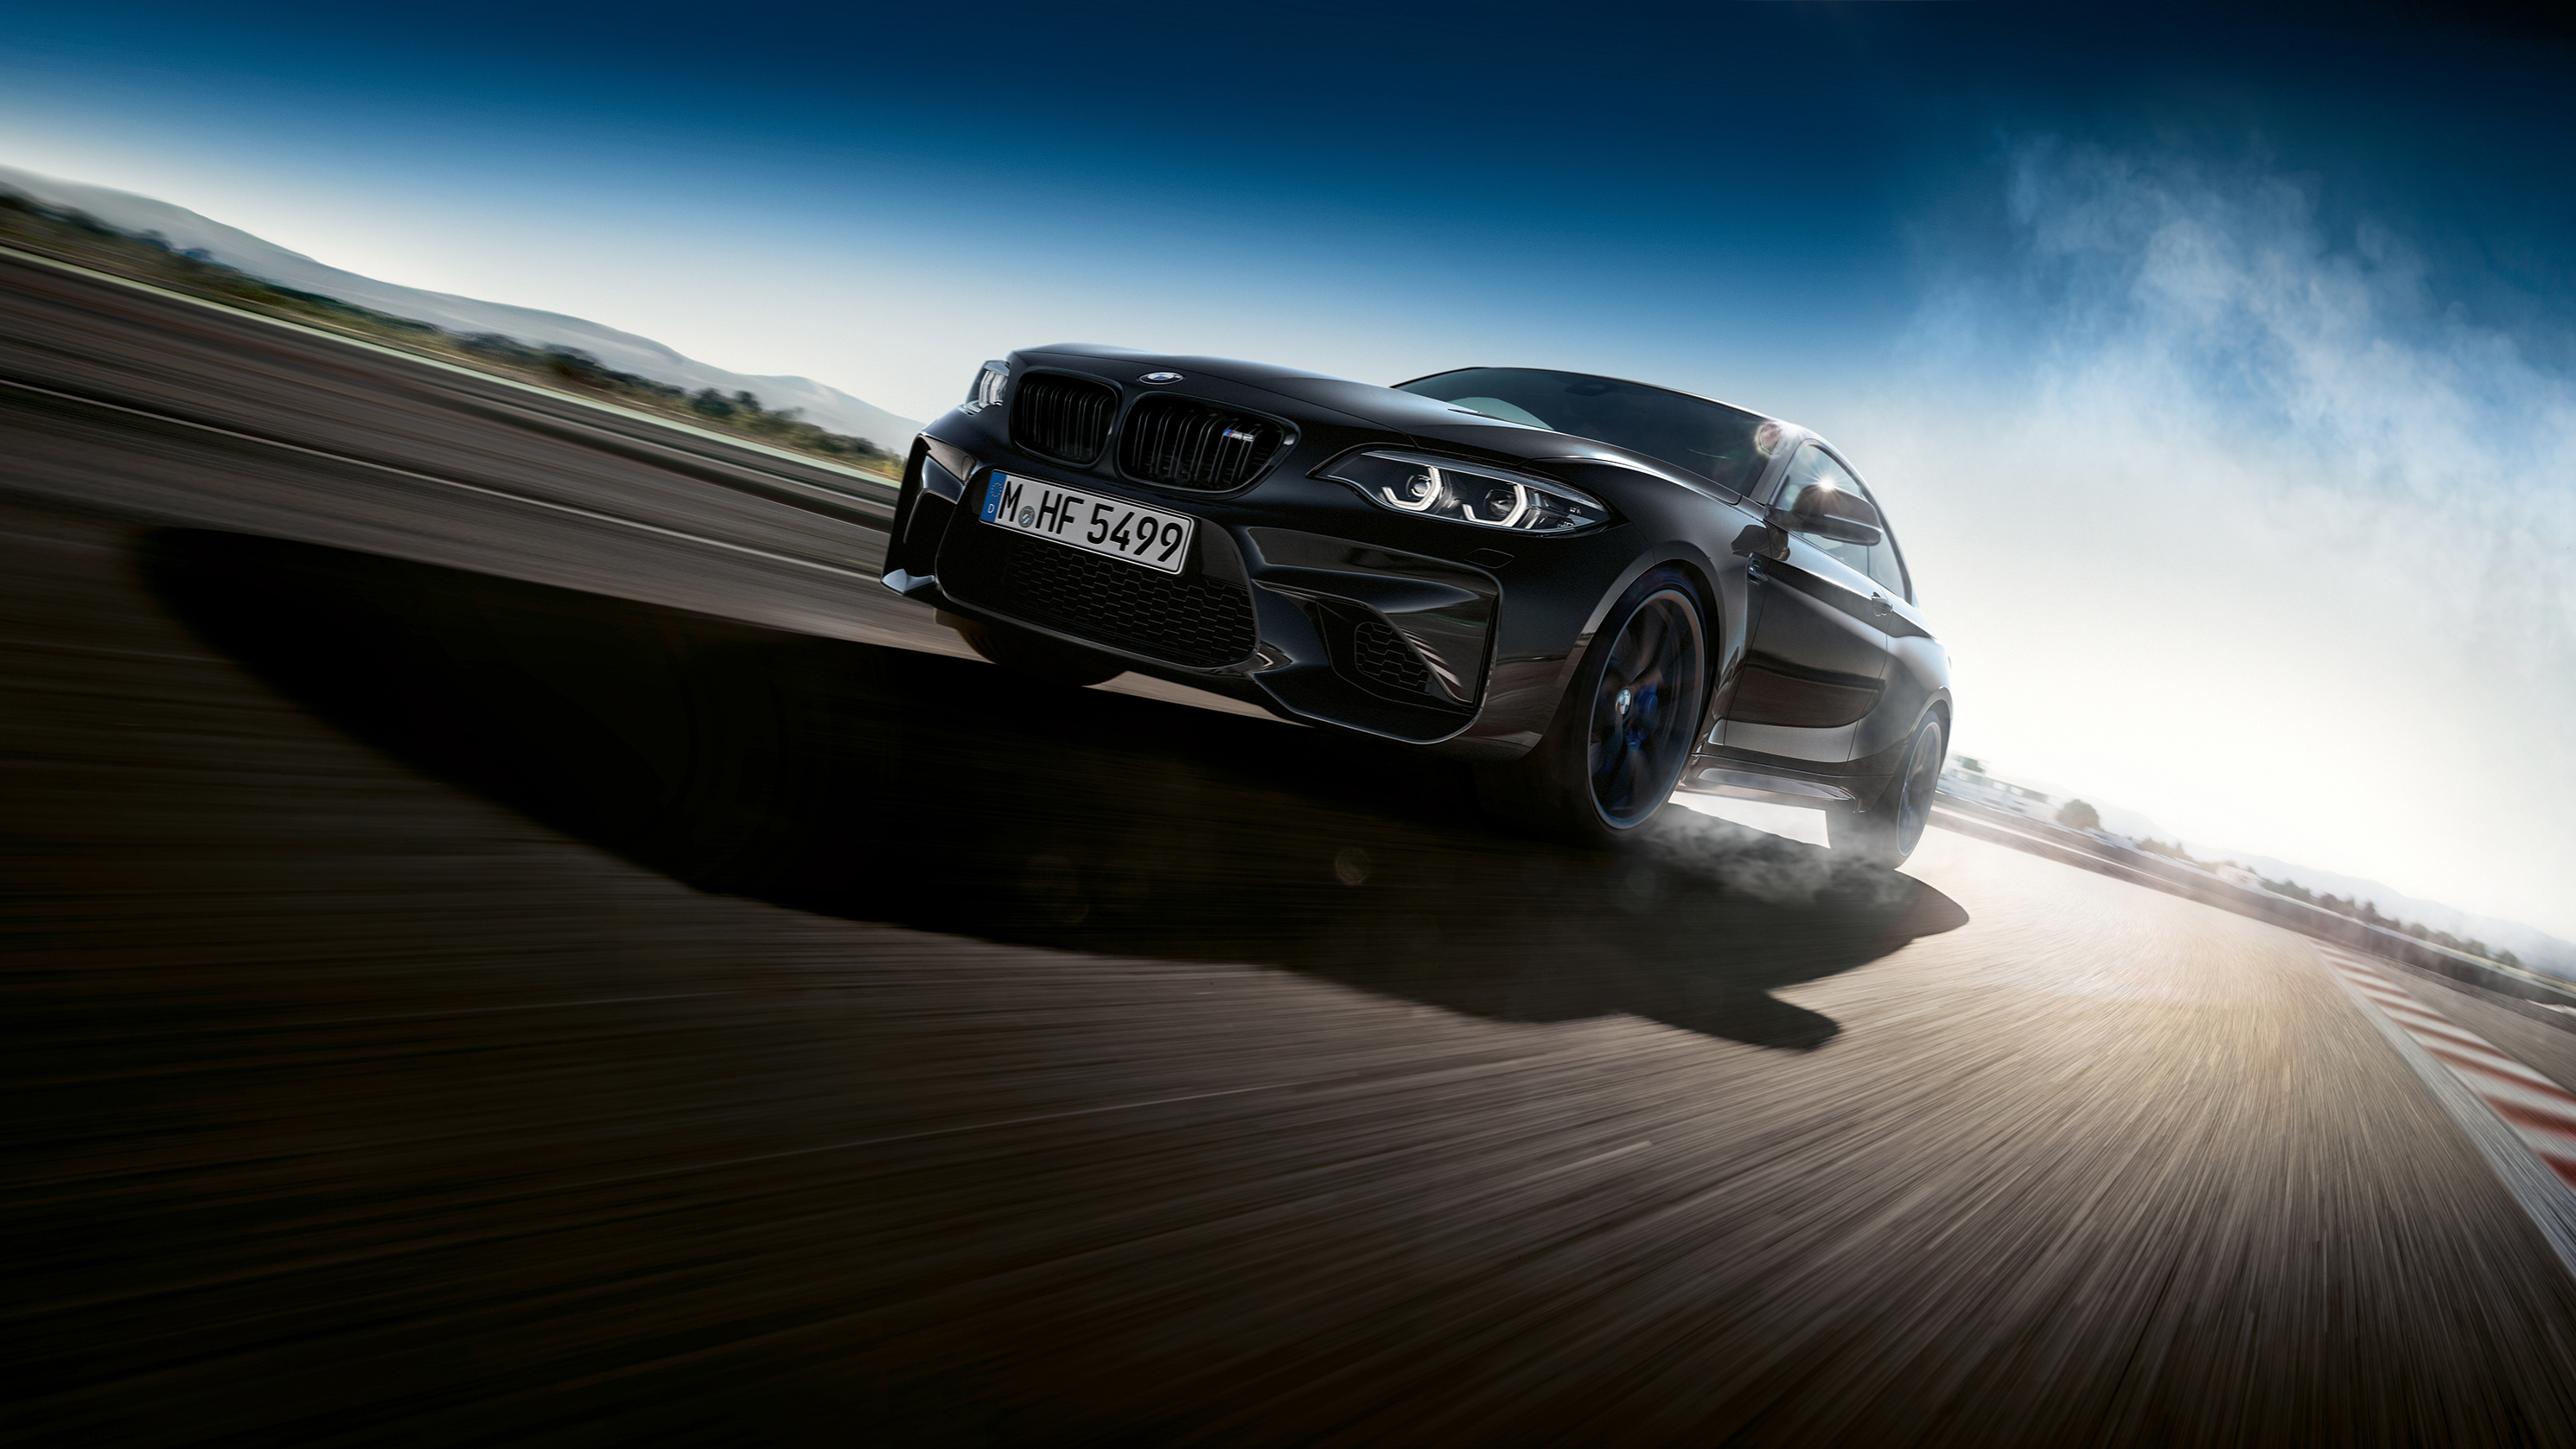 2980x1676 - BMW M2 Coupe Wallpapers 27